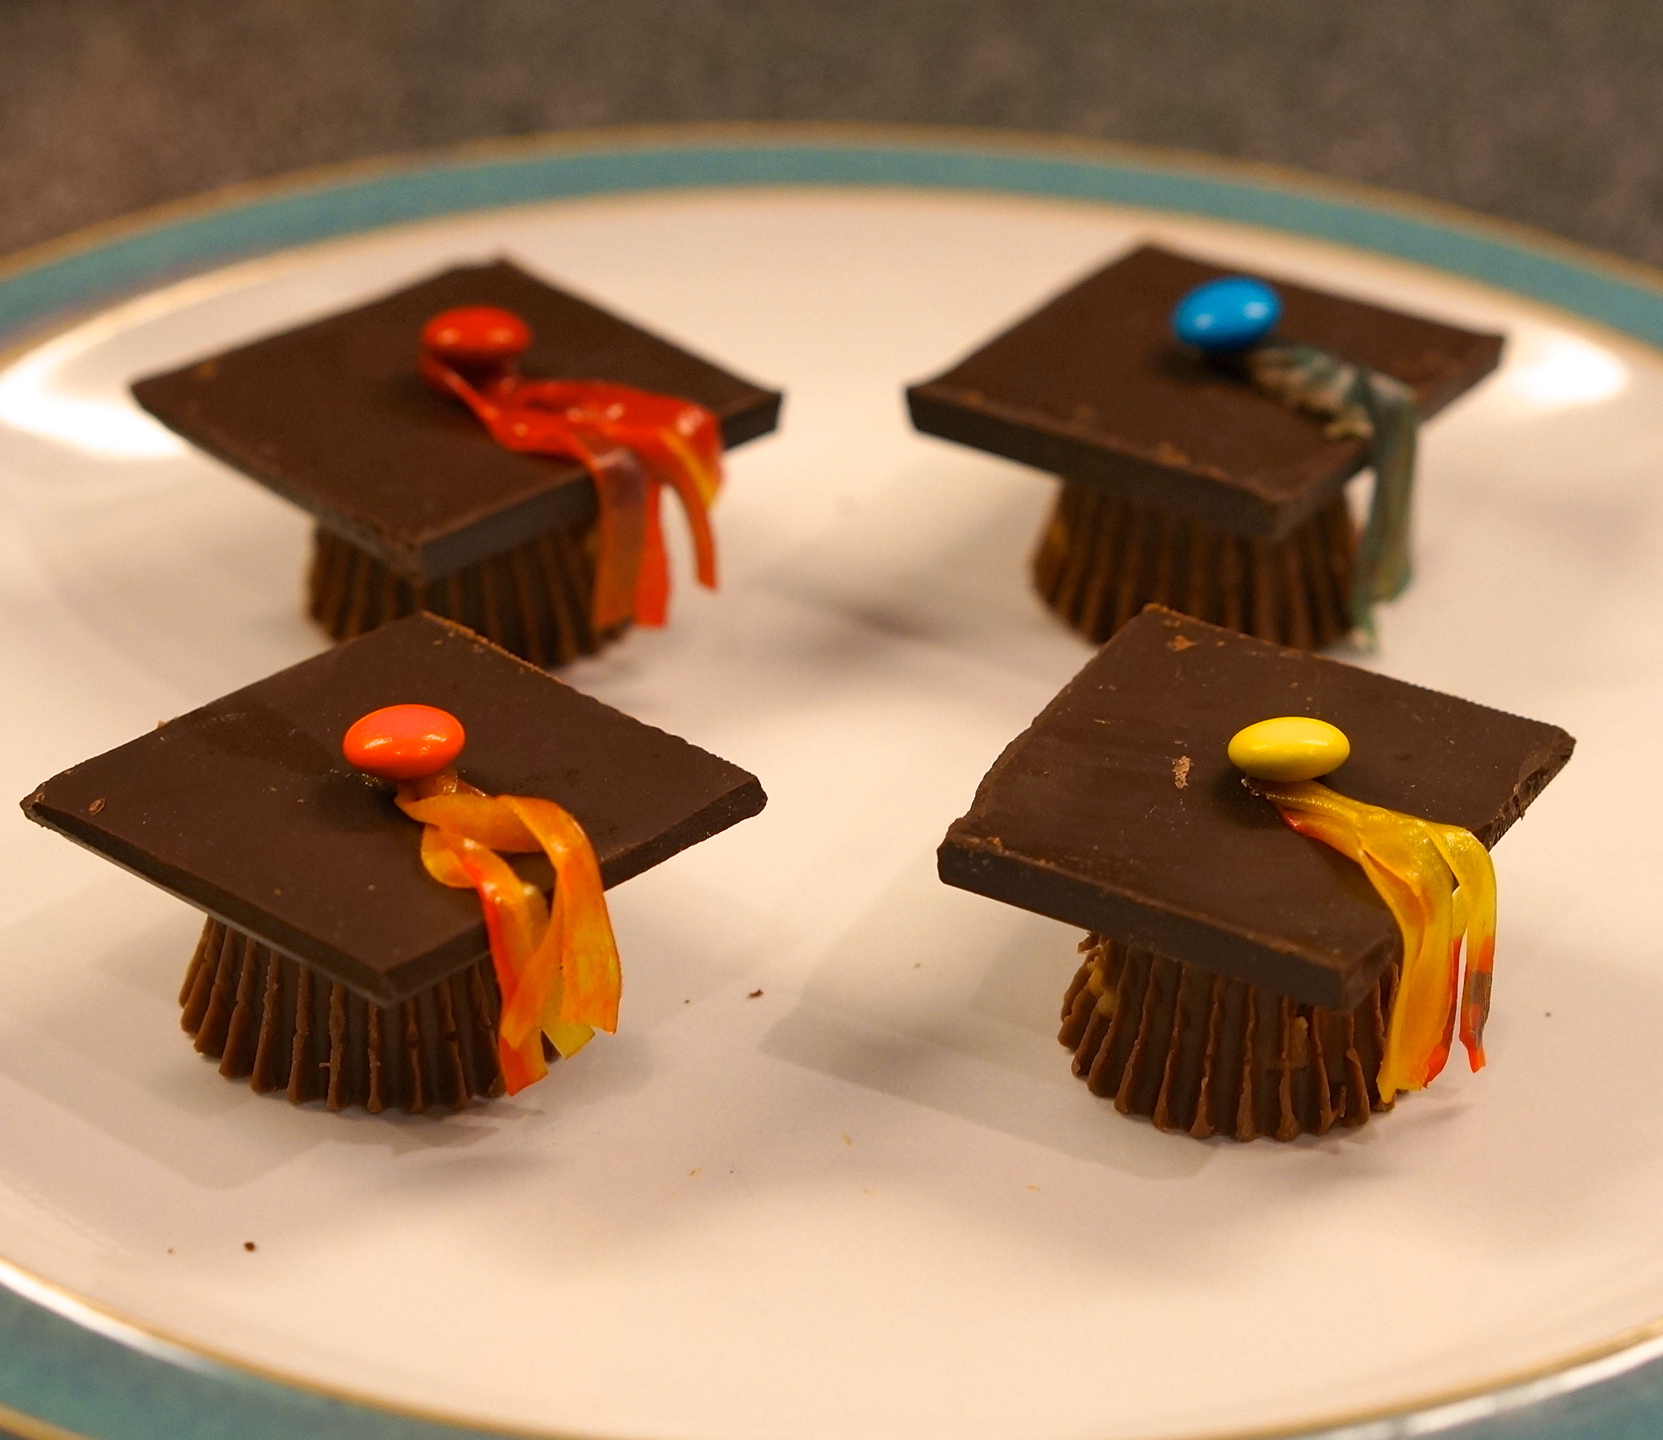 Adorable Chocolate Graduation Cap Dessert